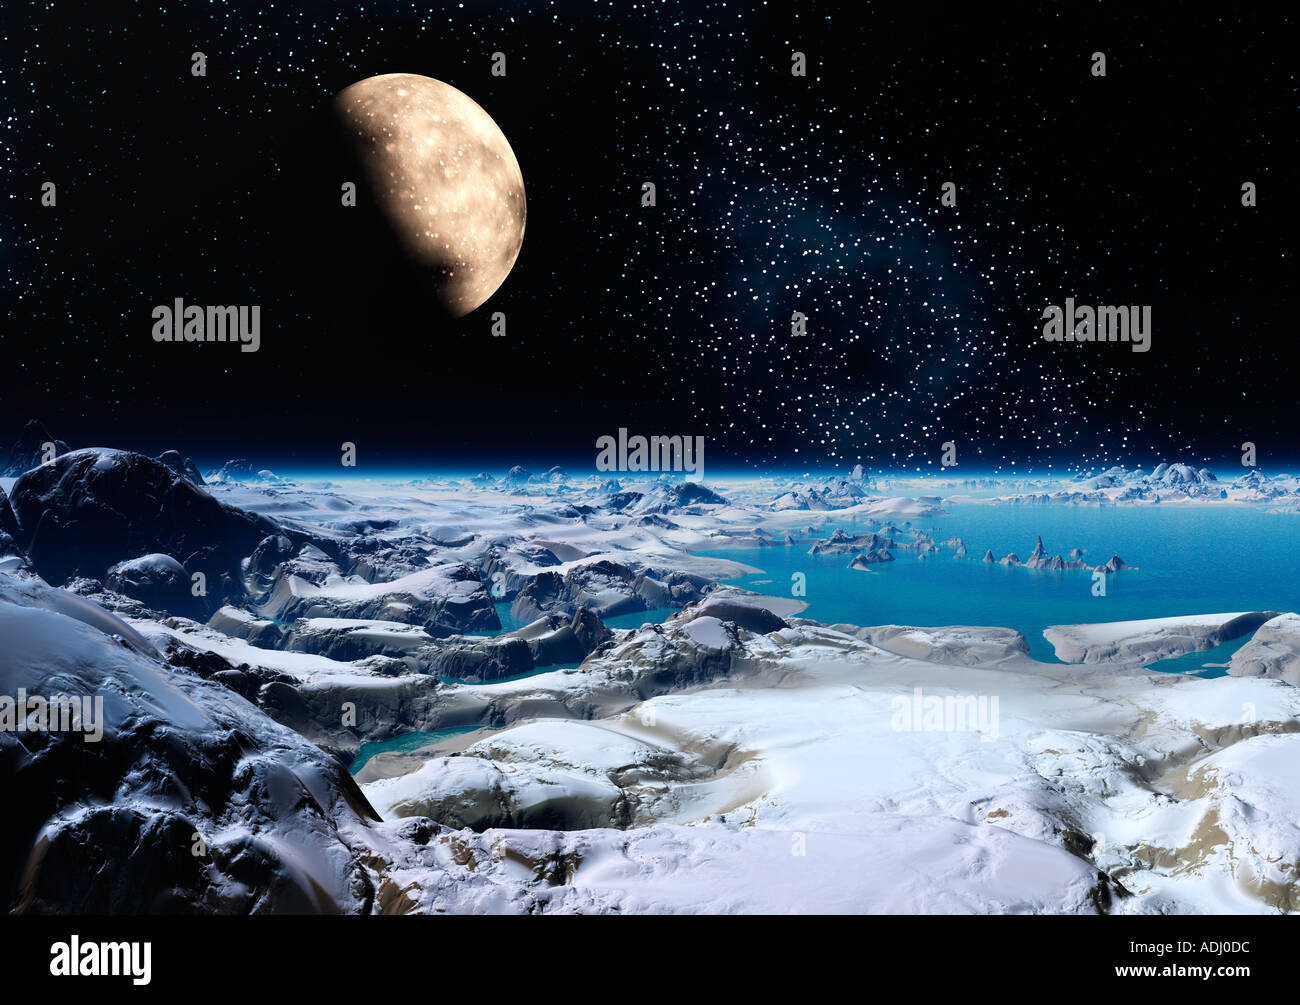 Moon rising over ice planet at night 3d computer generated sci fi world - Stock Image